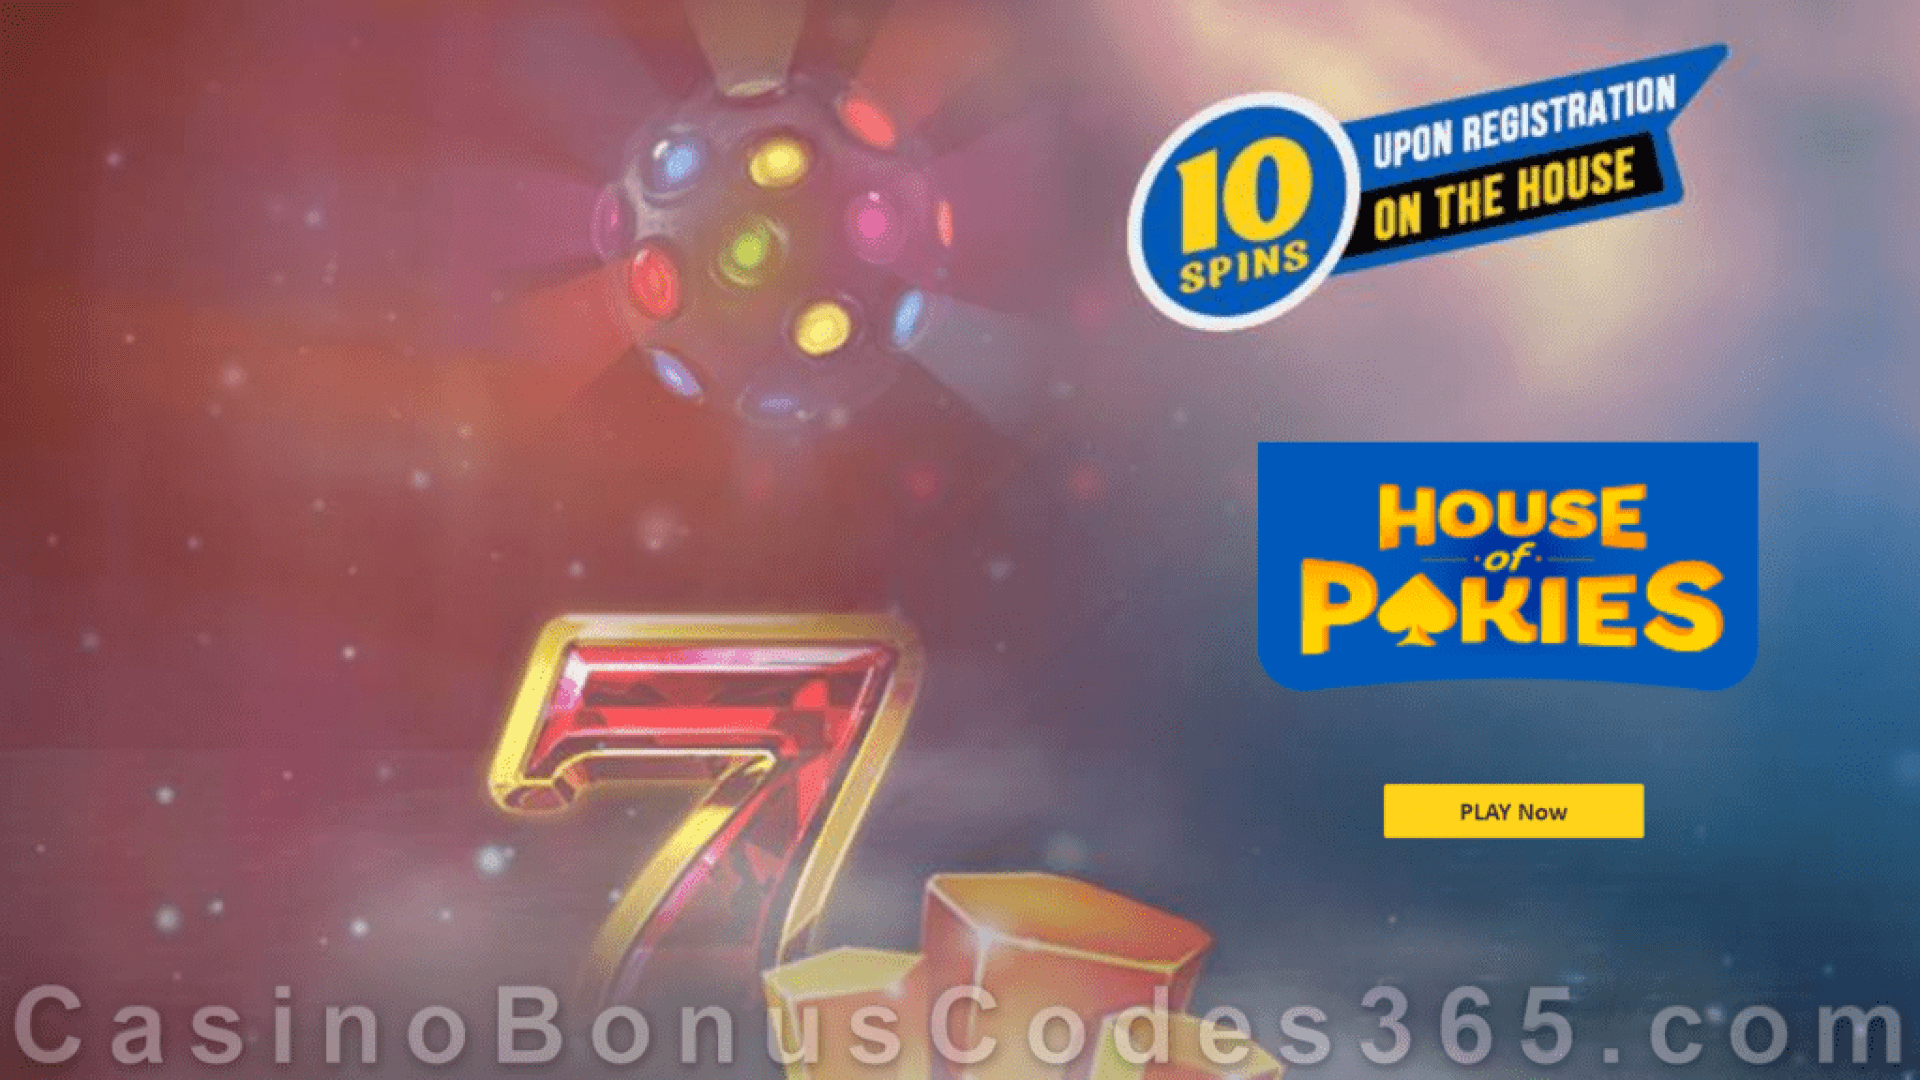 House of Pokies 10 FREE NetEnt Fruit Zen Spins No Deposit Welcome Offer